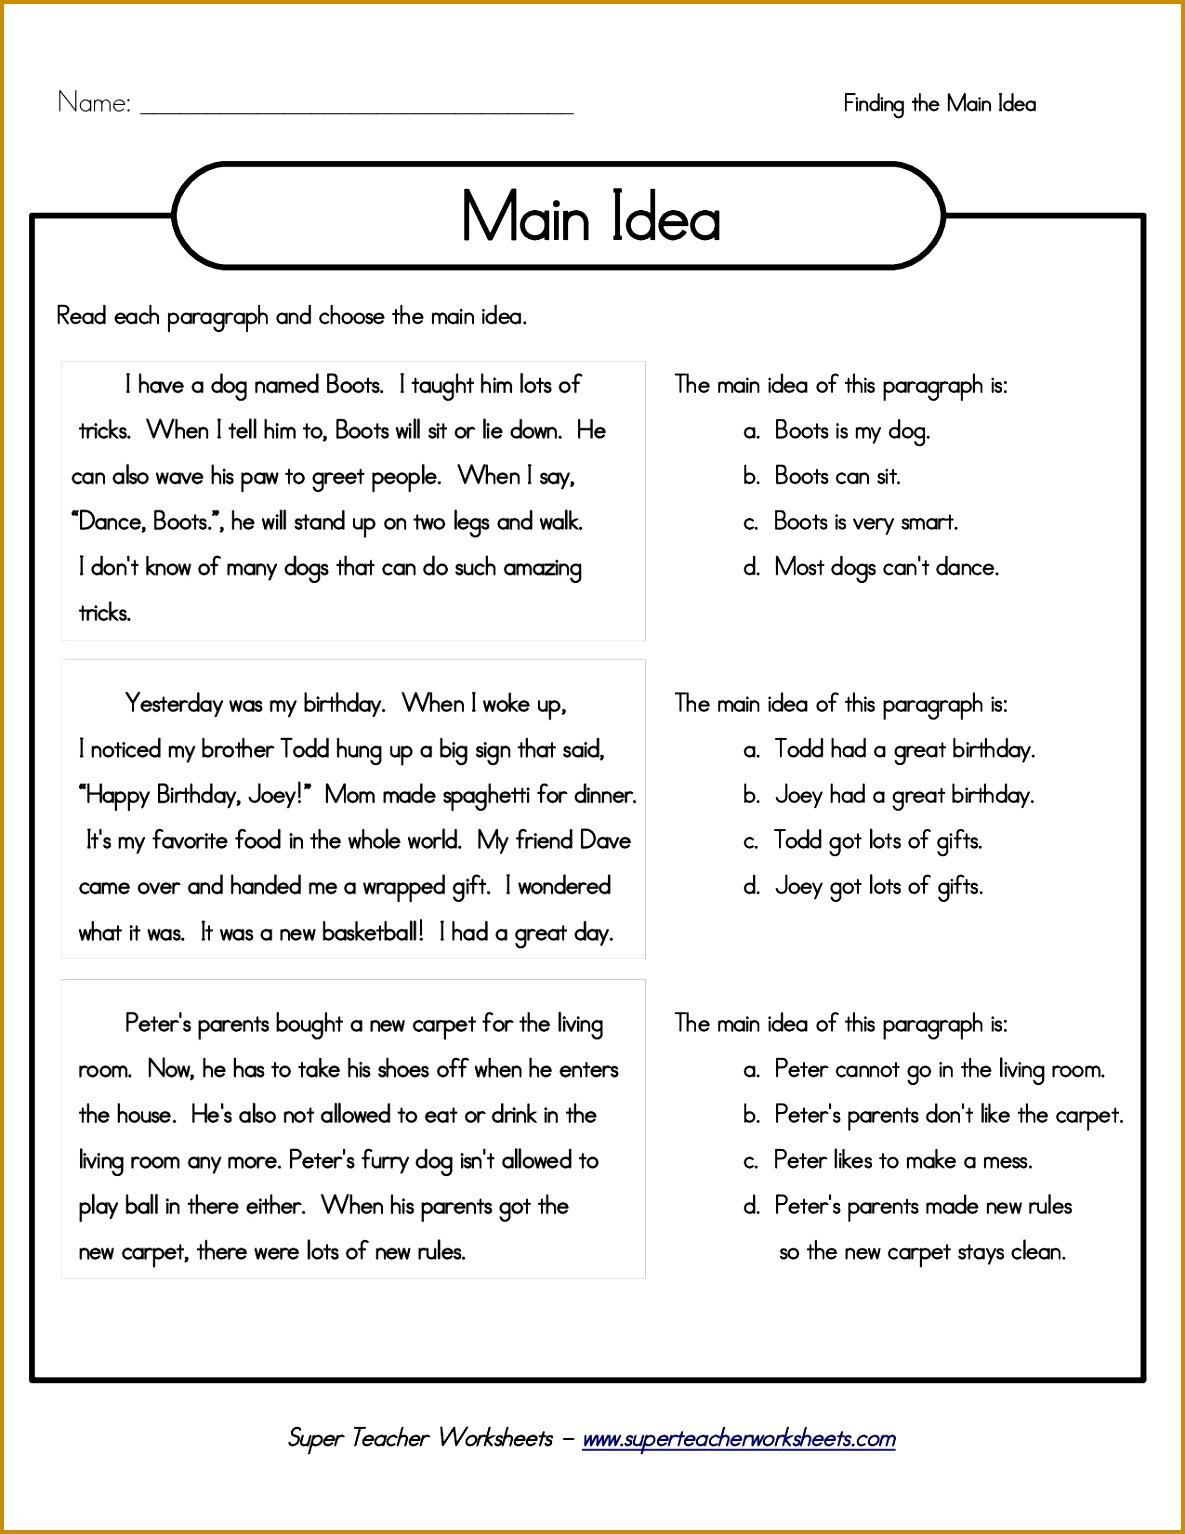 7 Super Teacher Worksheets Login